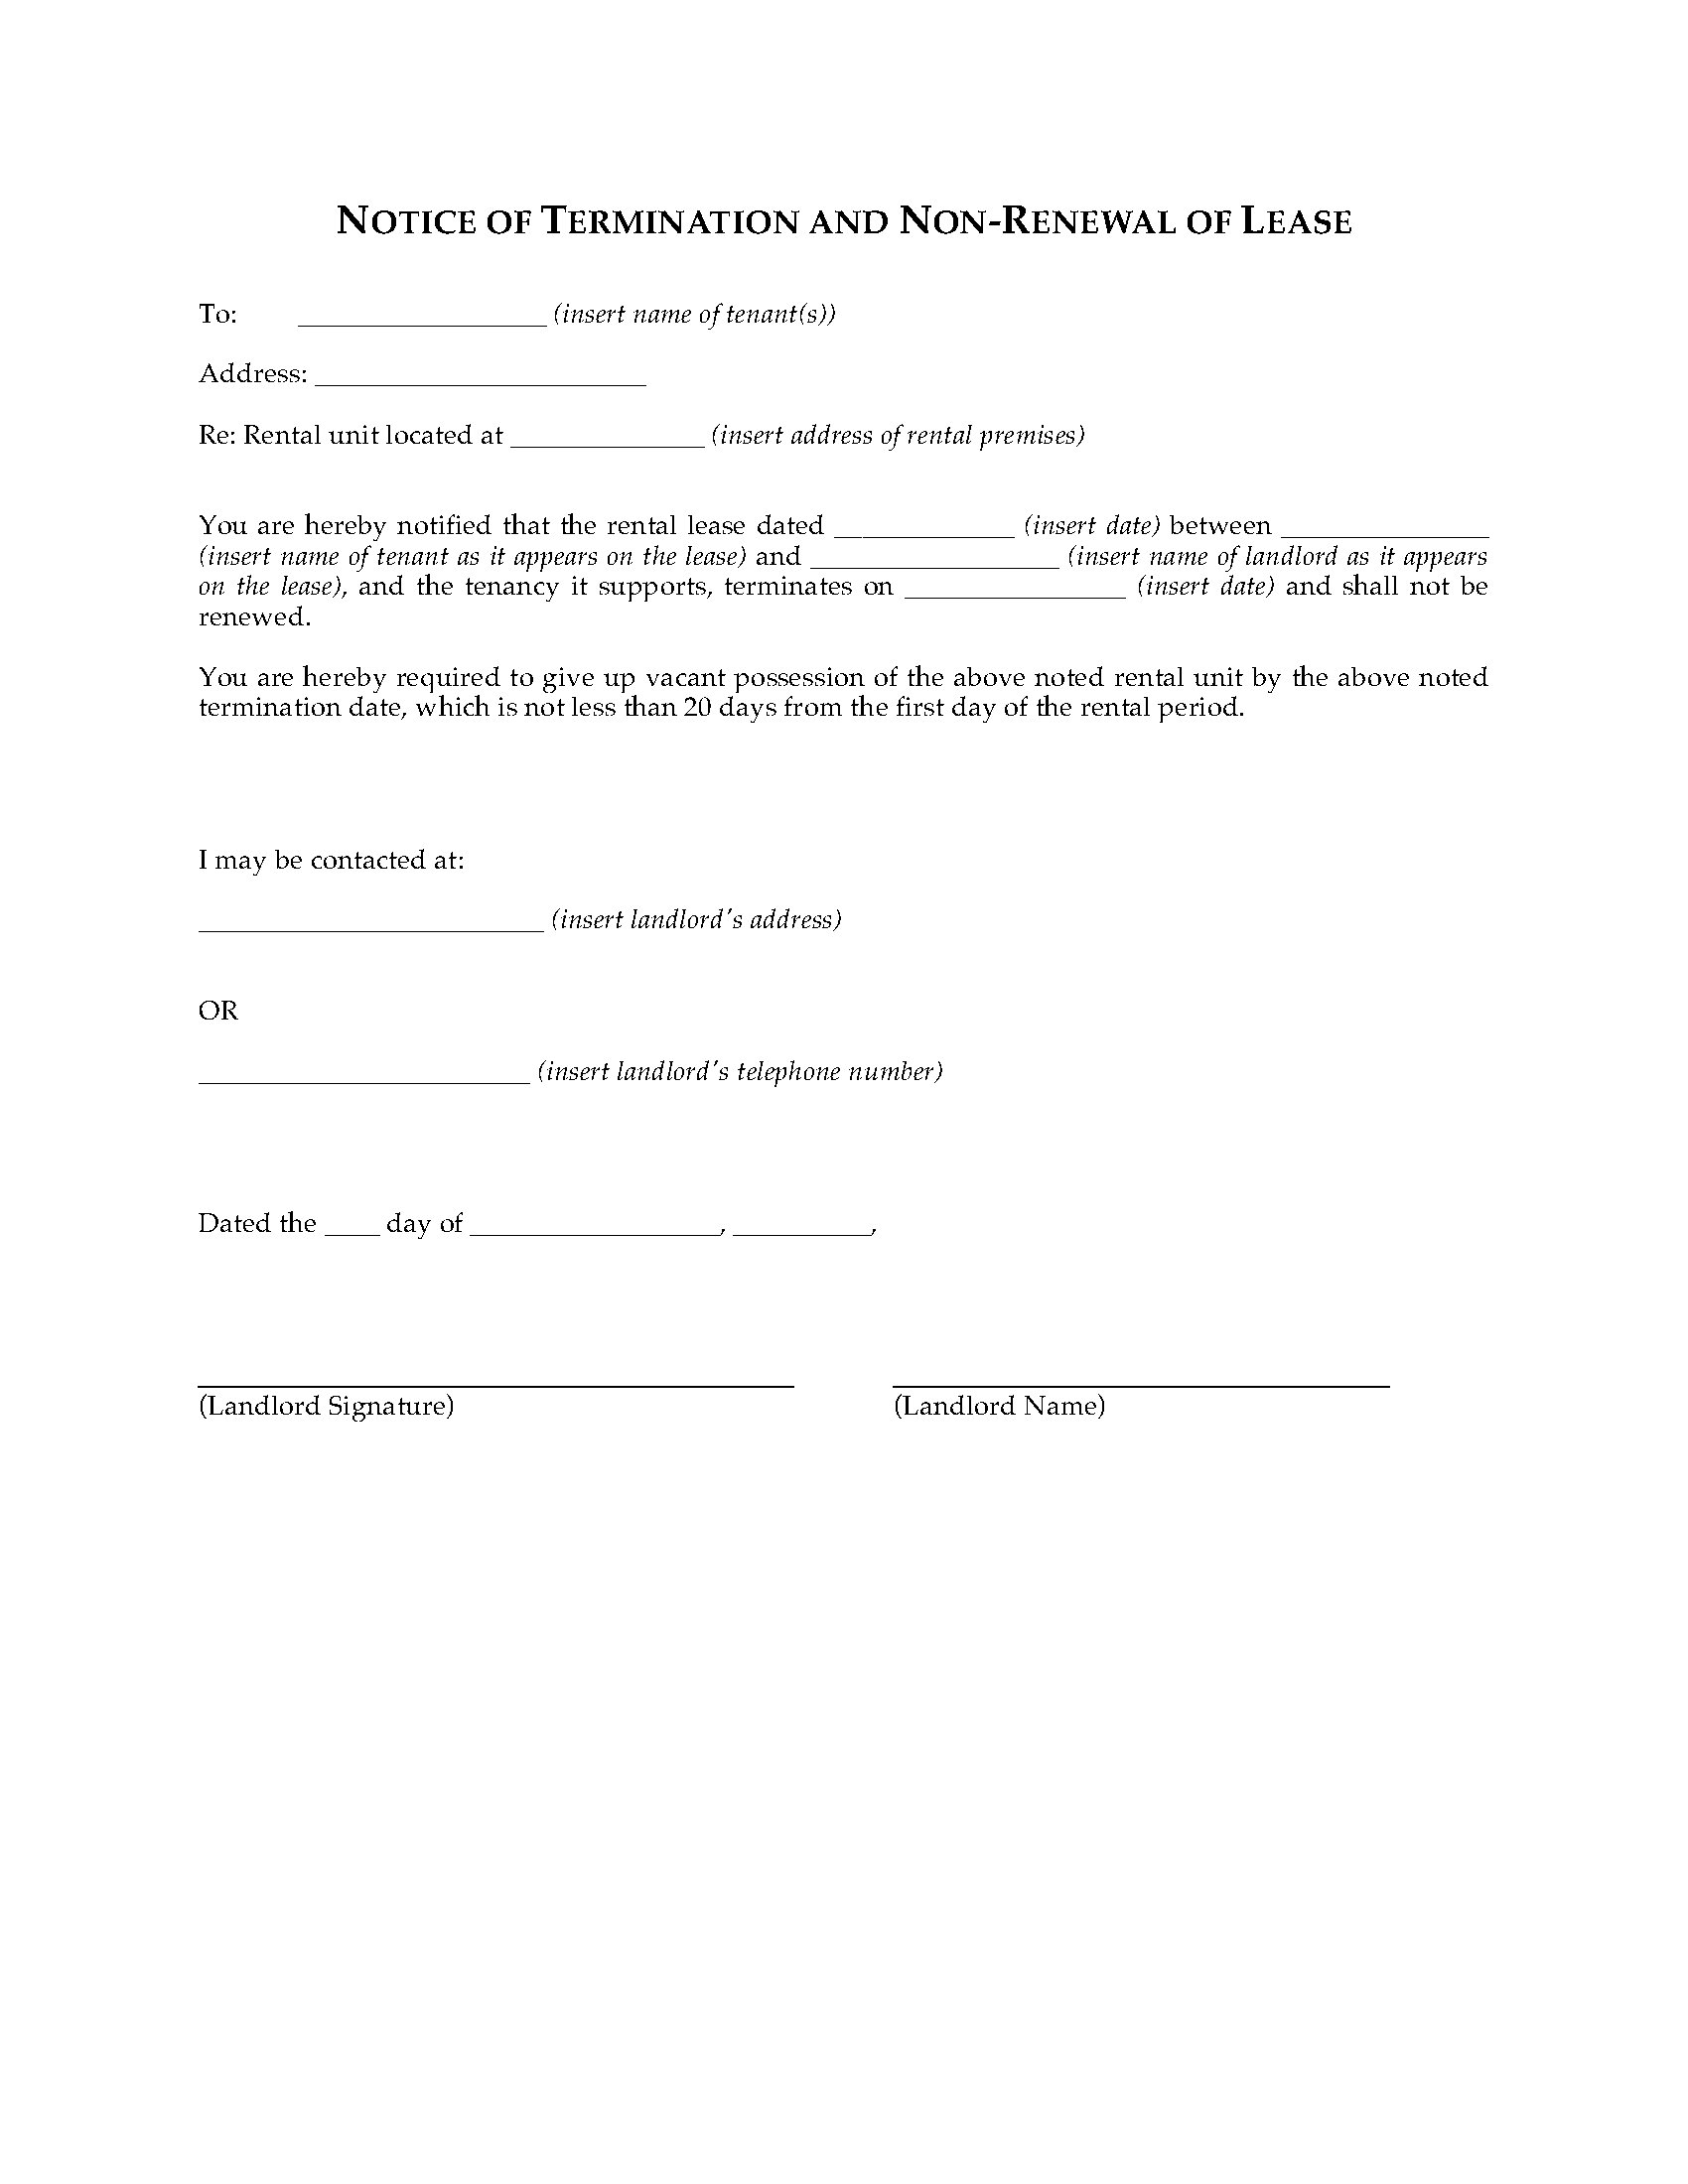 washington notice of termination by landlord and non renewal of lease legal forms and business. Black Bedroom Furniture Sets. Home Design Ideas